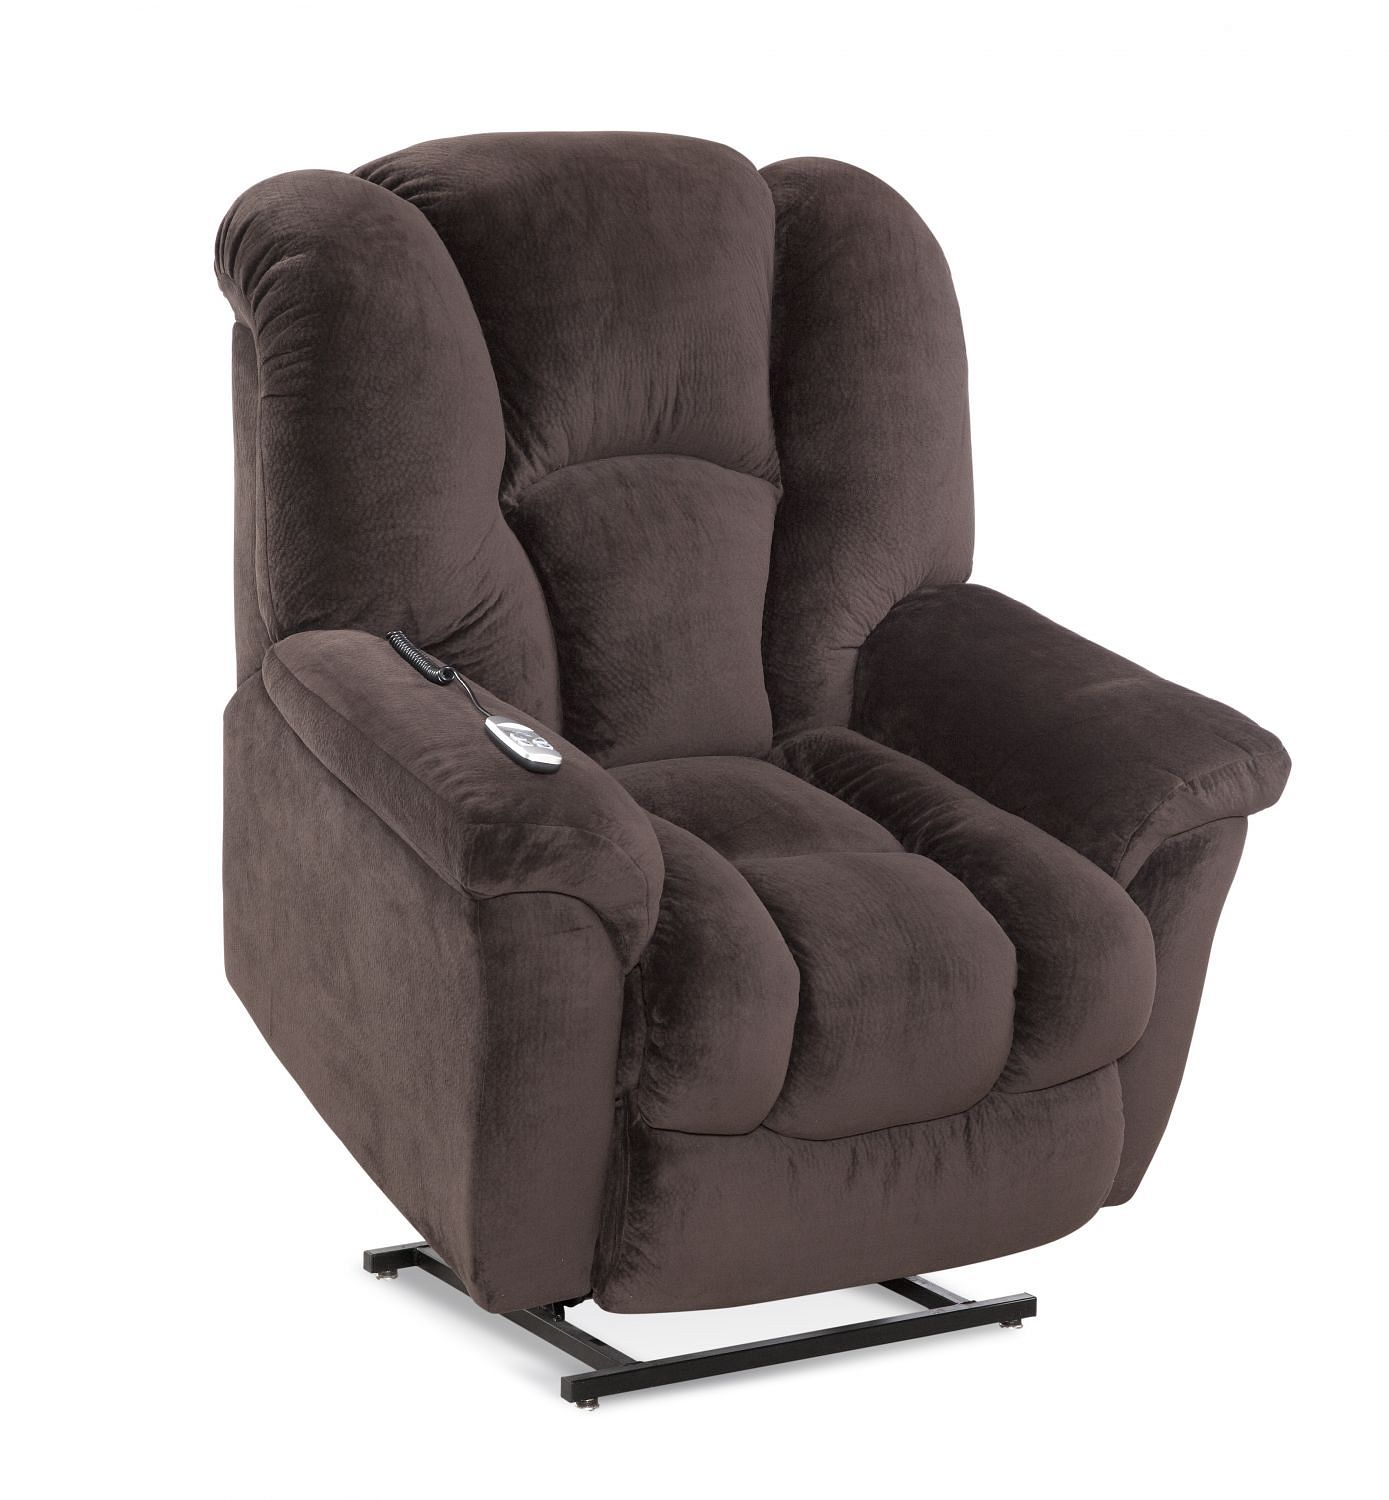 Walgreens Lift Chairs Chair Pillow For Back Our New Line Of Power Is Perfect Those